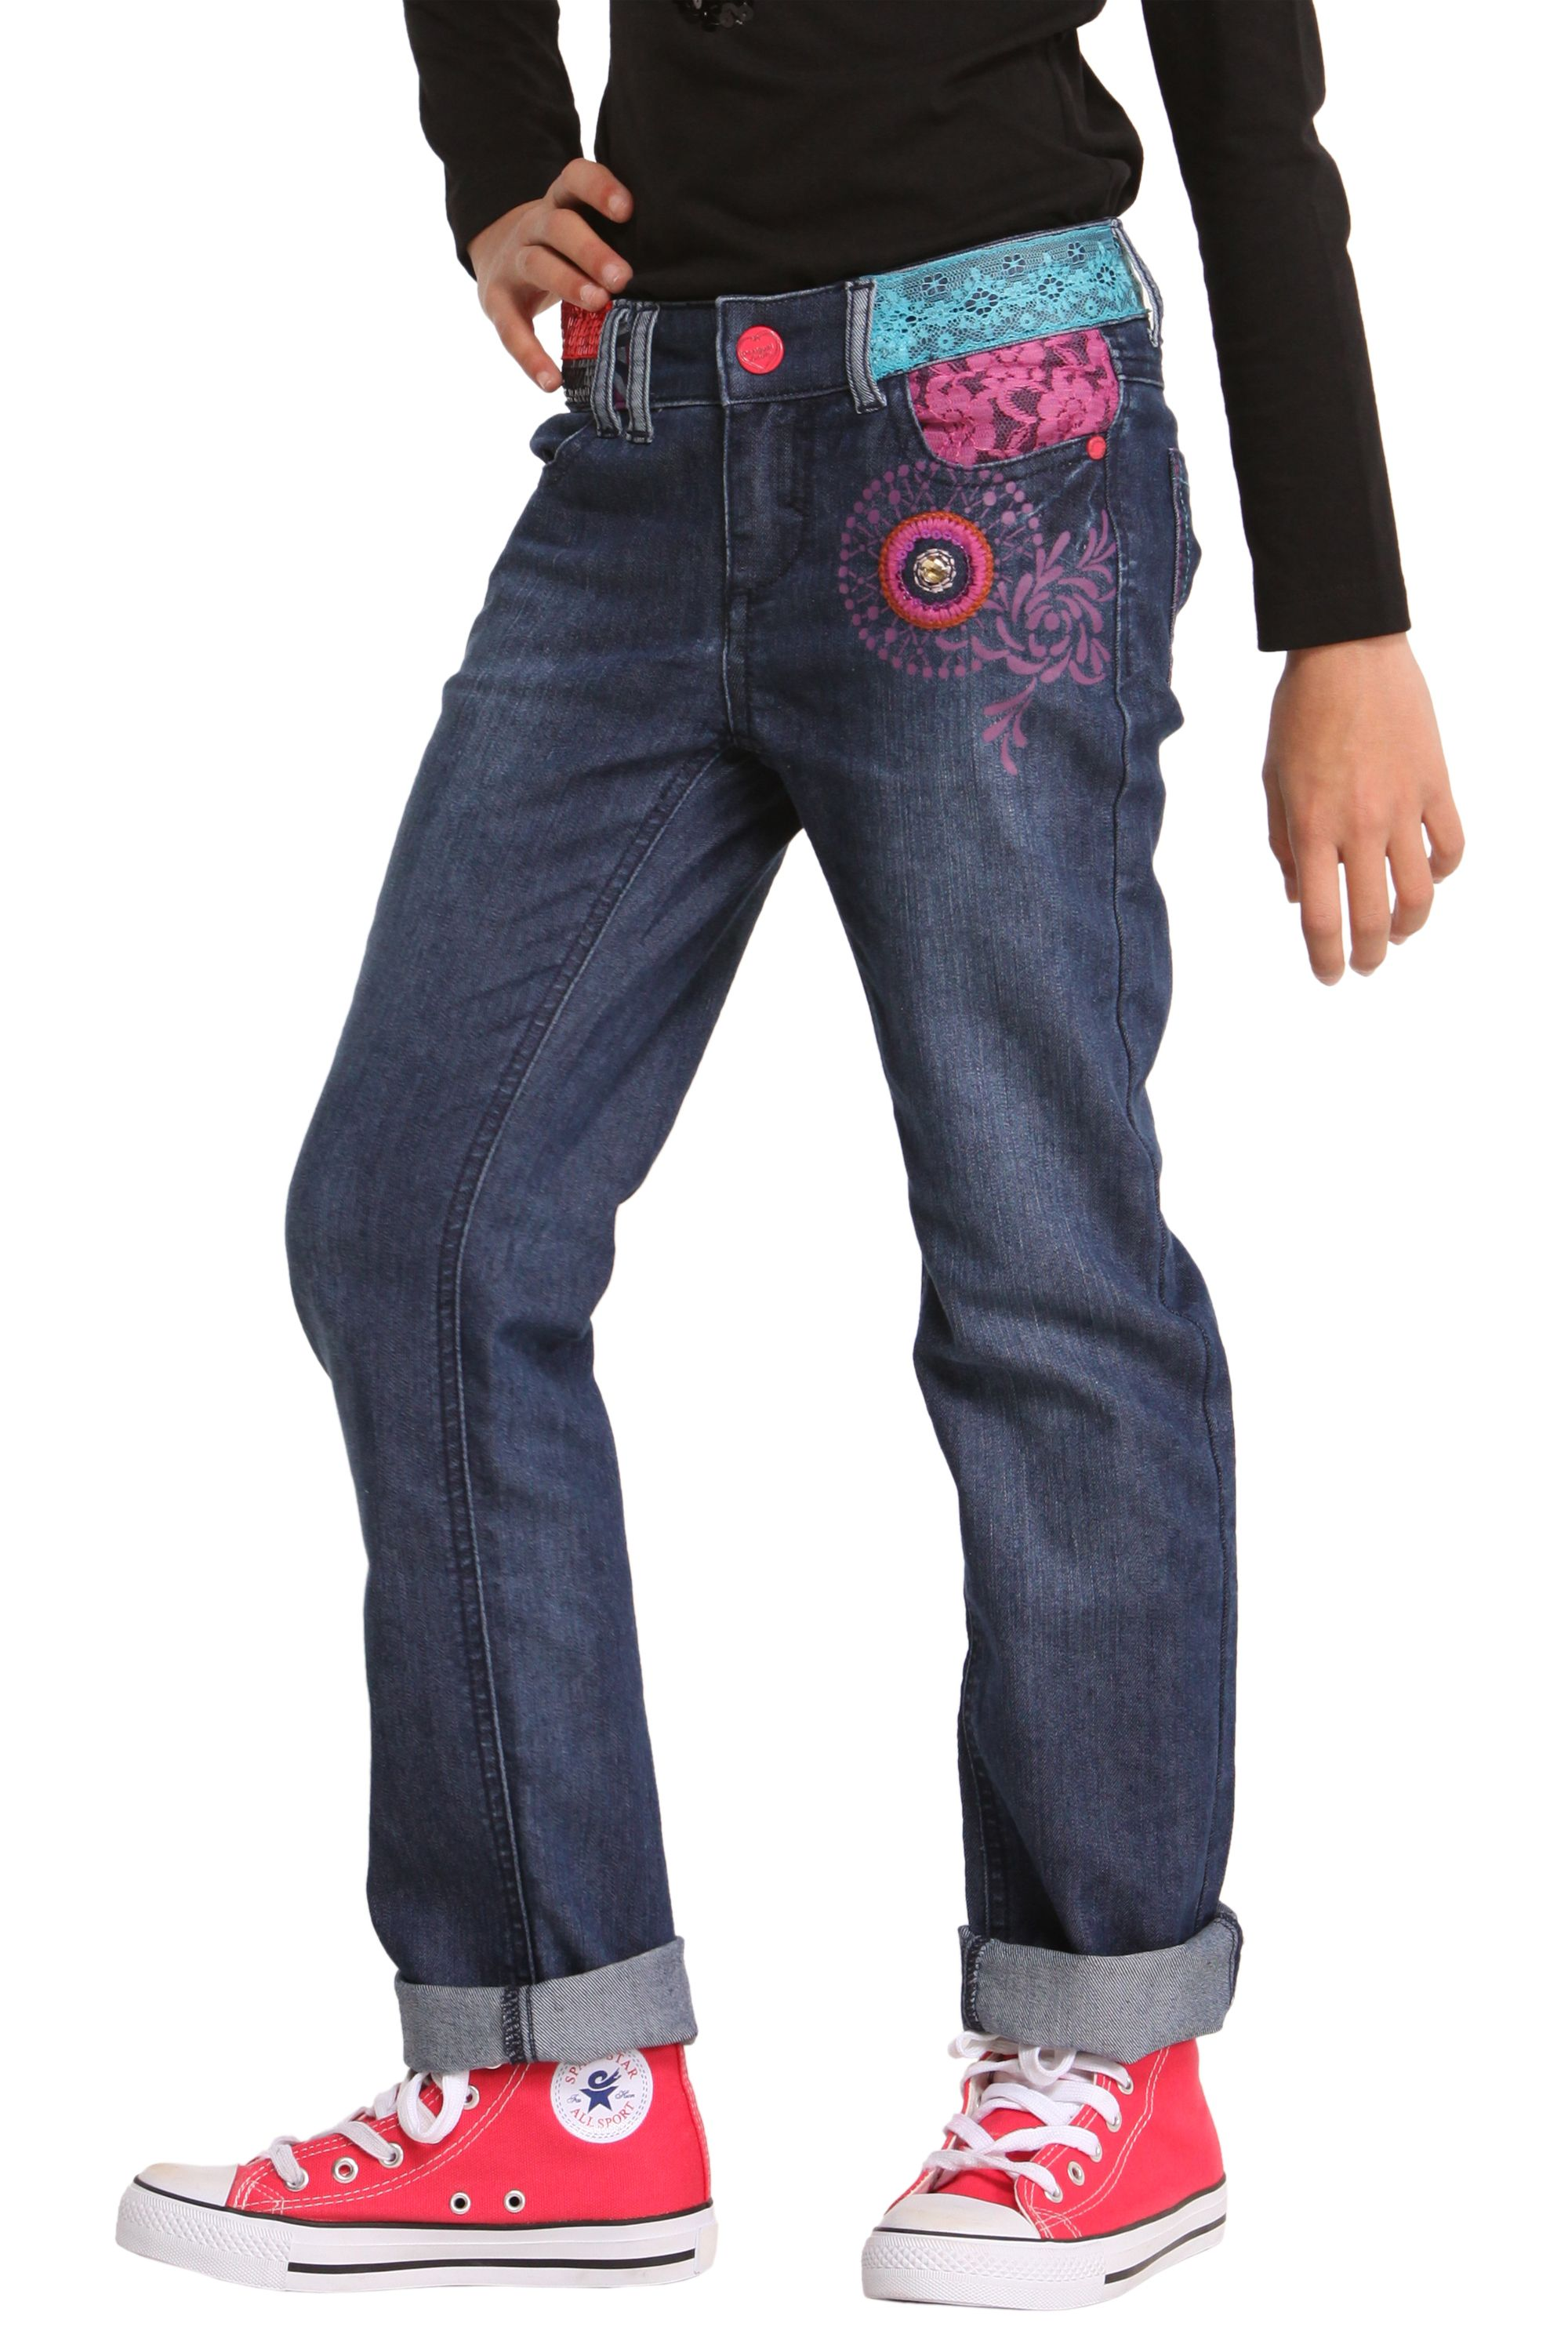 Girls boxer jeans